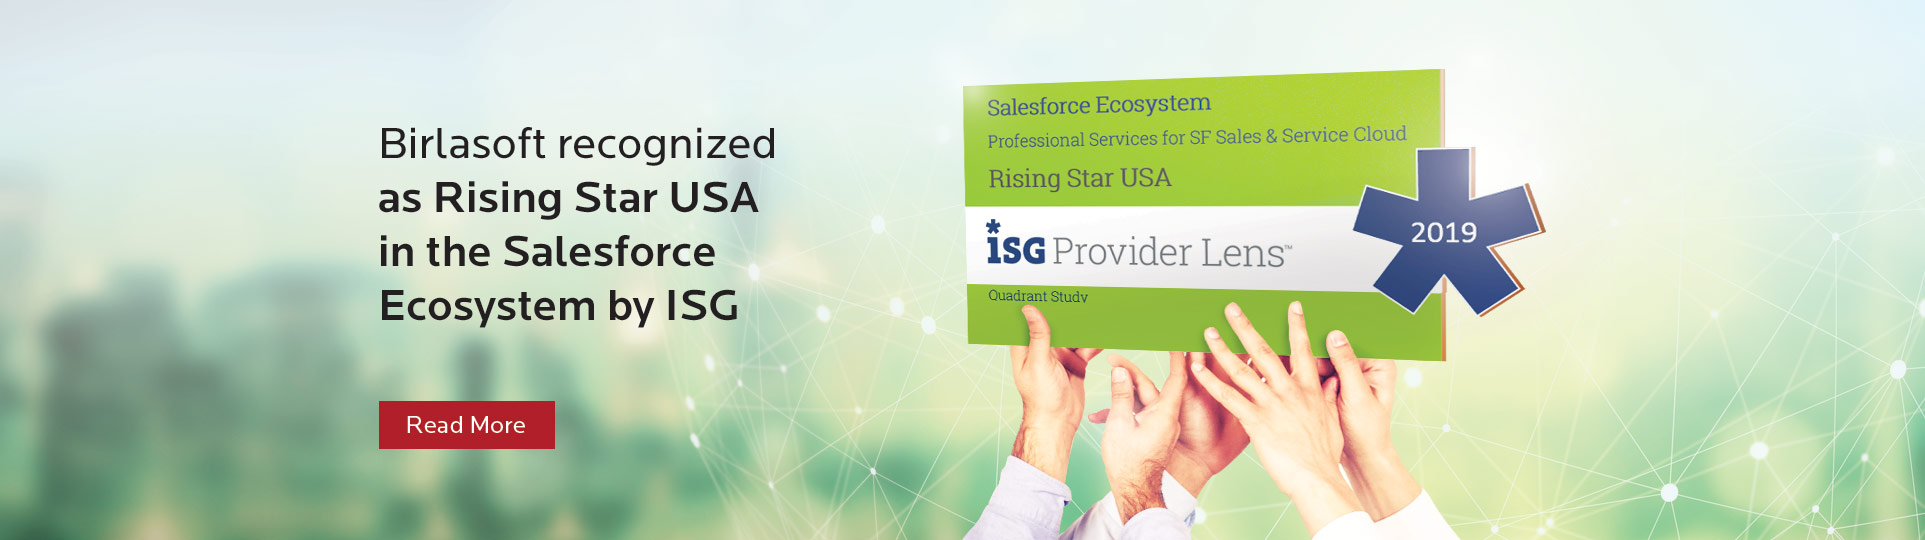 Birlasoft Recognized as Rising Star USA in the Salesforce Ecosystem by ISG